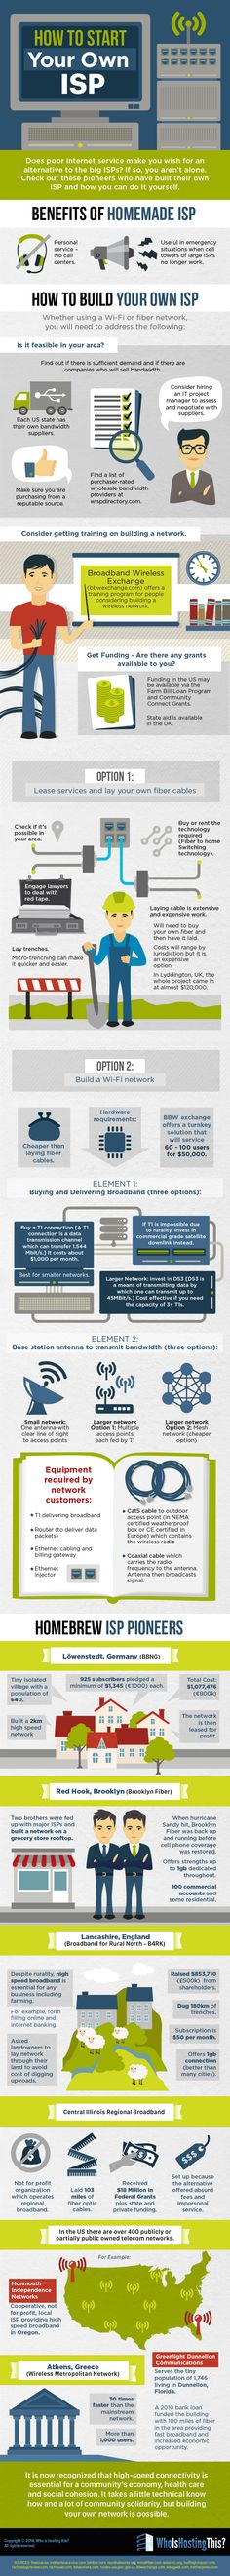 How to Start Your Own ISP #infographic #Internet #ISP #HowTo